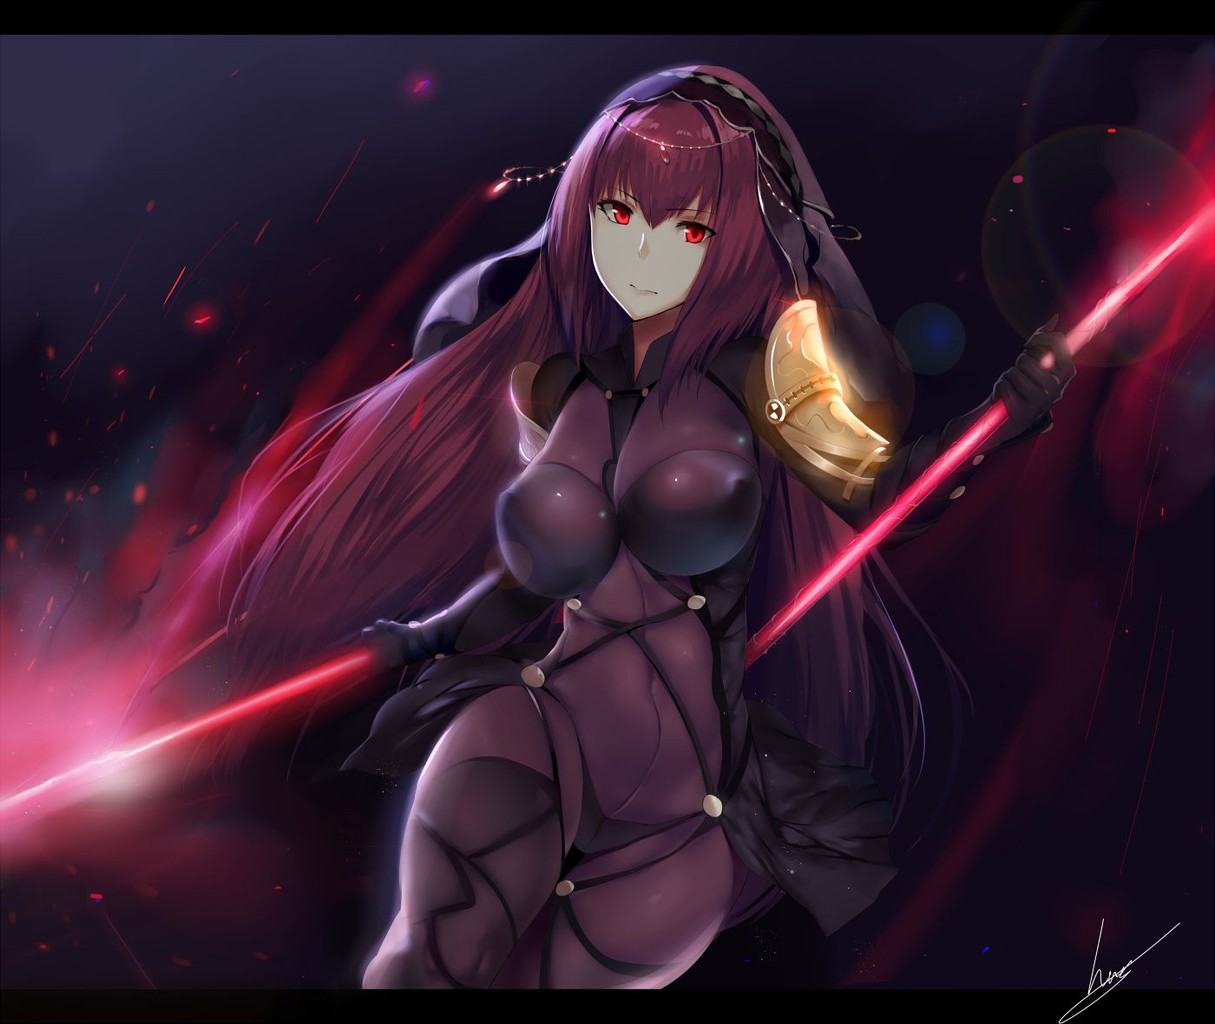 scathach_(fategrand_order)162